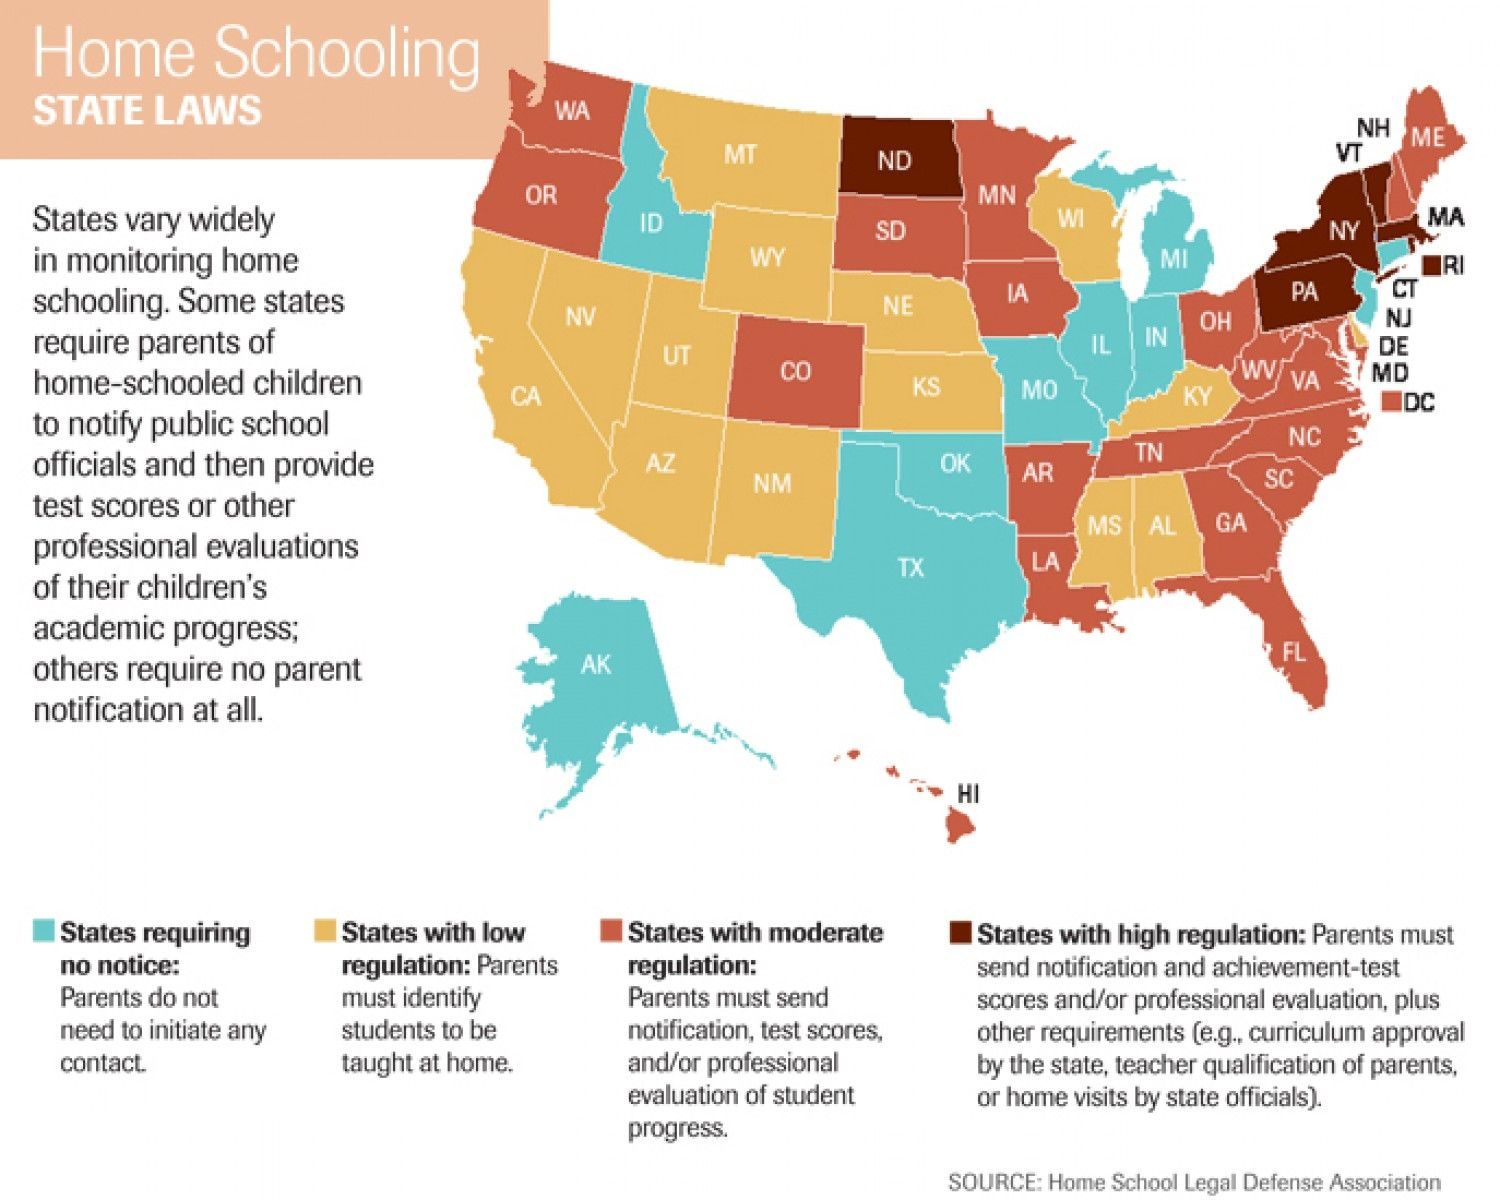 Home Schooling State Laws Infographic. This education map